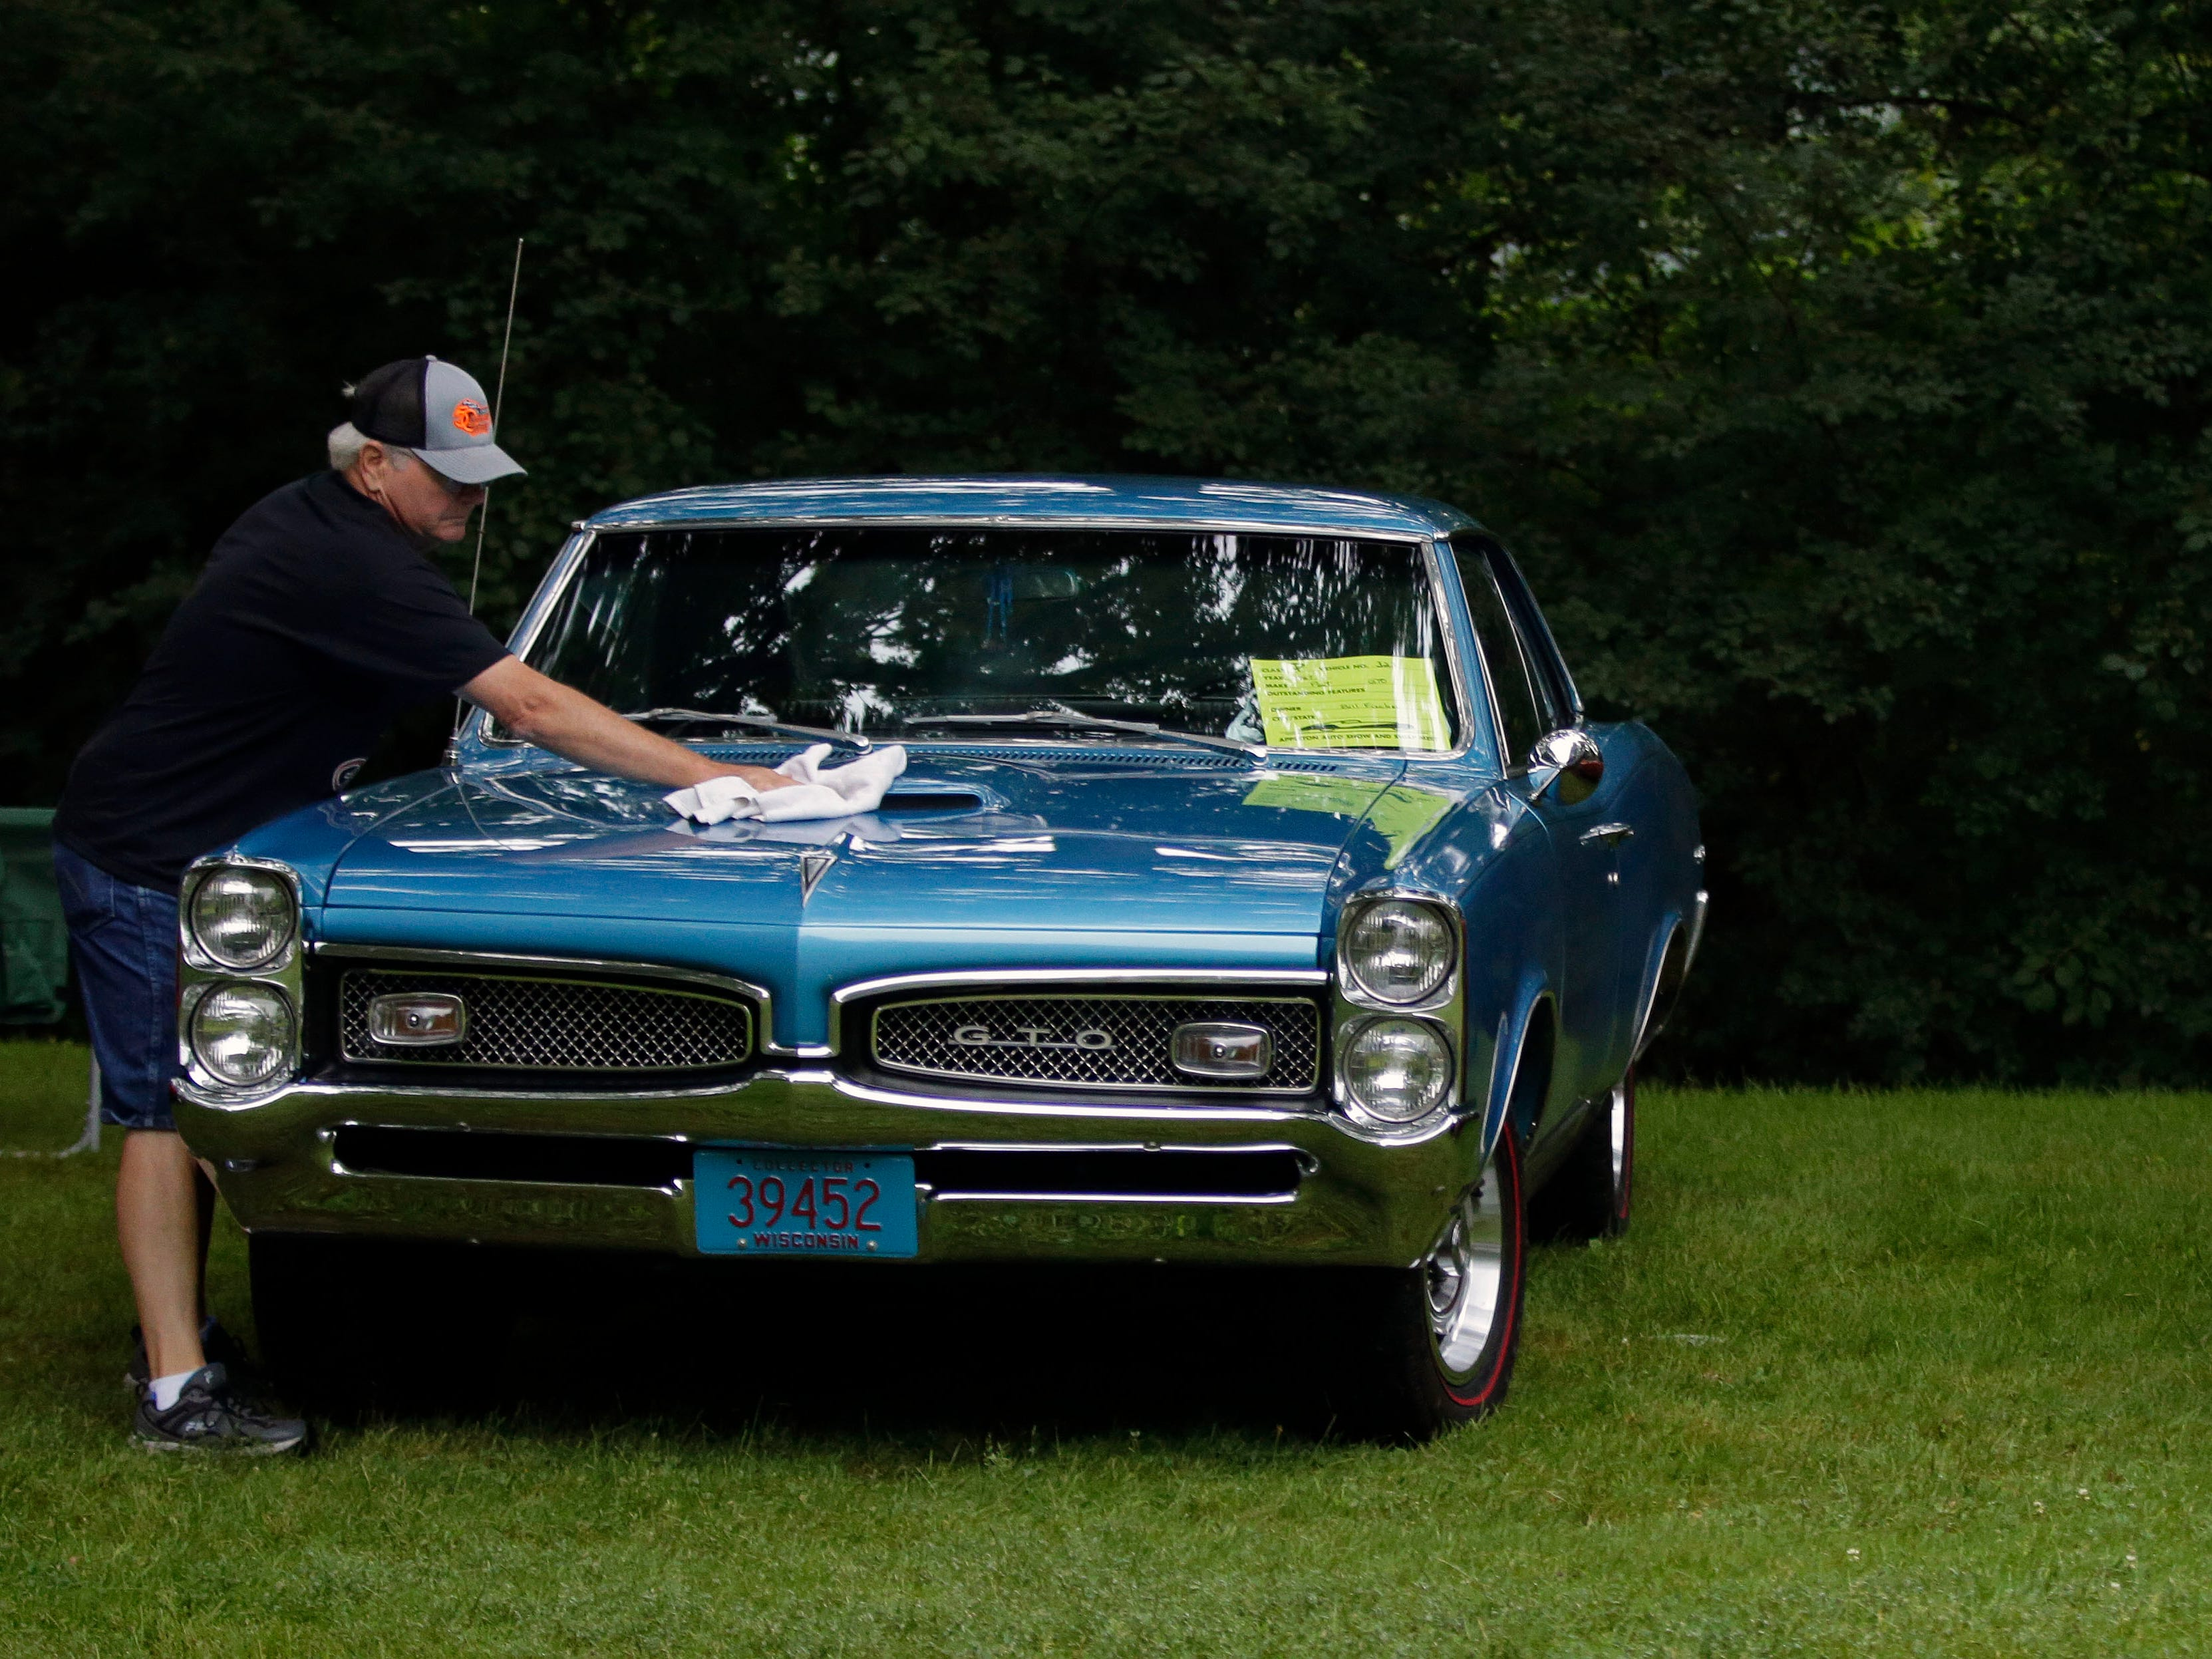 Bill Fischer, left, and Ronn Elliott, clean their cars as the Appleton Old Car Show and Swap Meet takes place Sunday, July 22, 2018, at Pierce Park in Appleton, Wis. Fischer has owned the 1967 GTO since 1970 and has not missed an Appleton car show in 41 years.